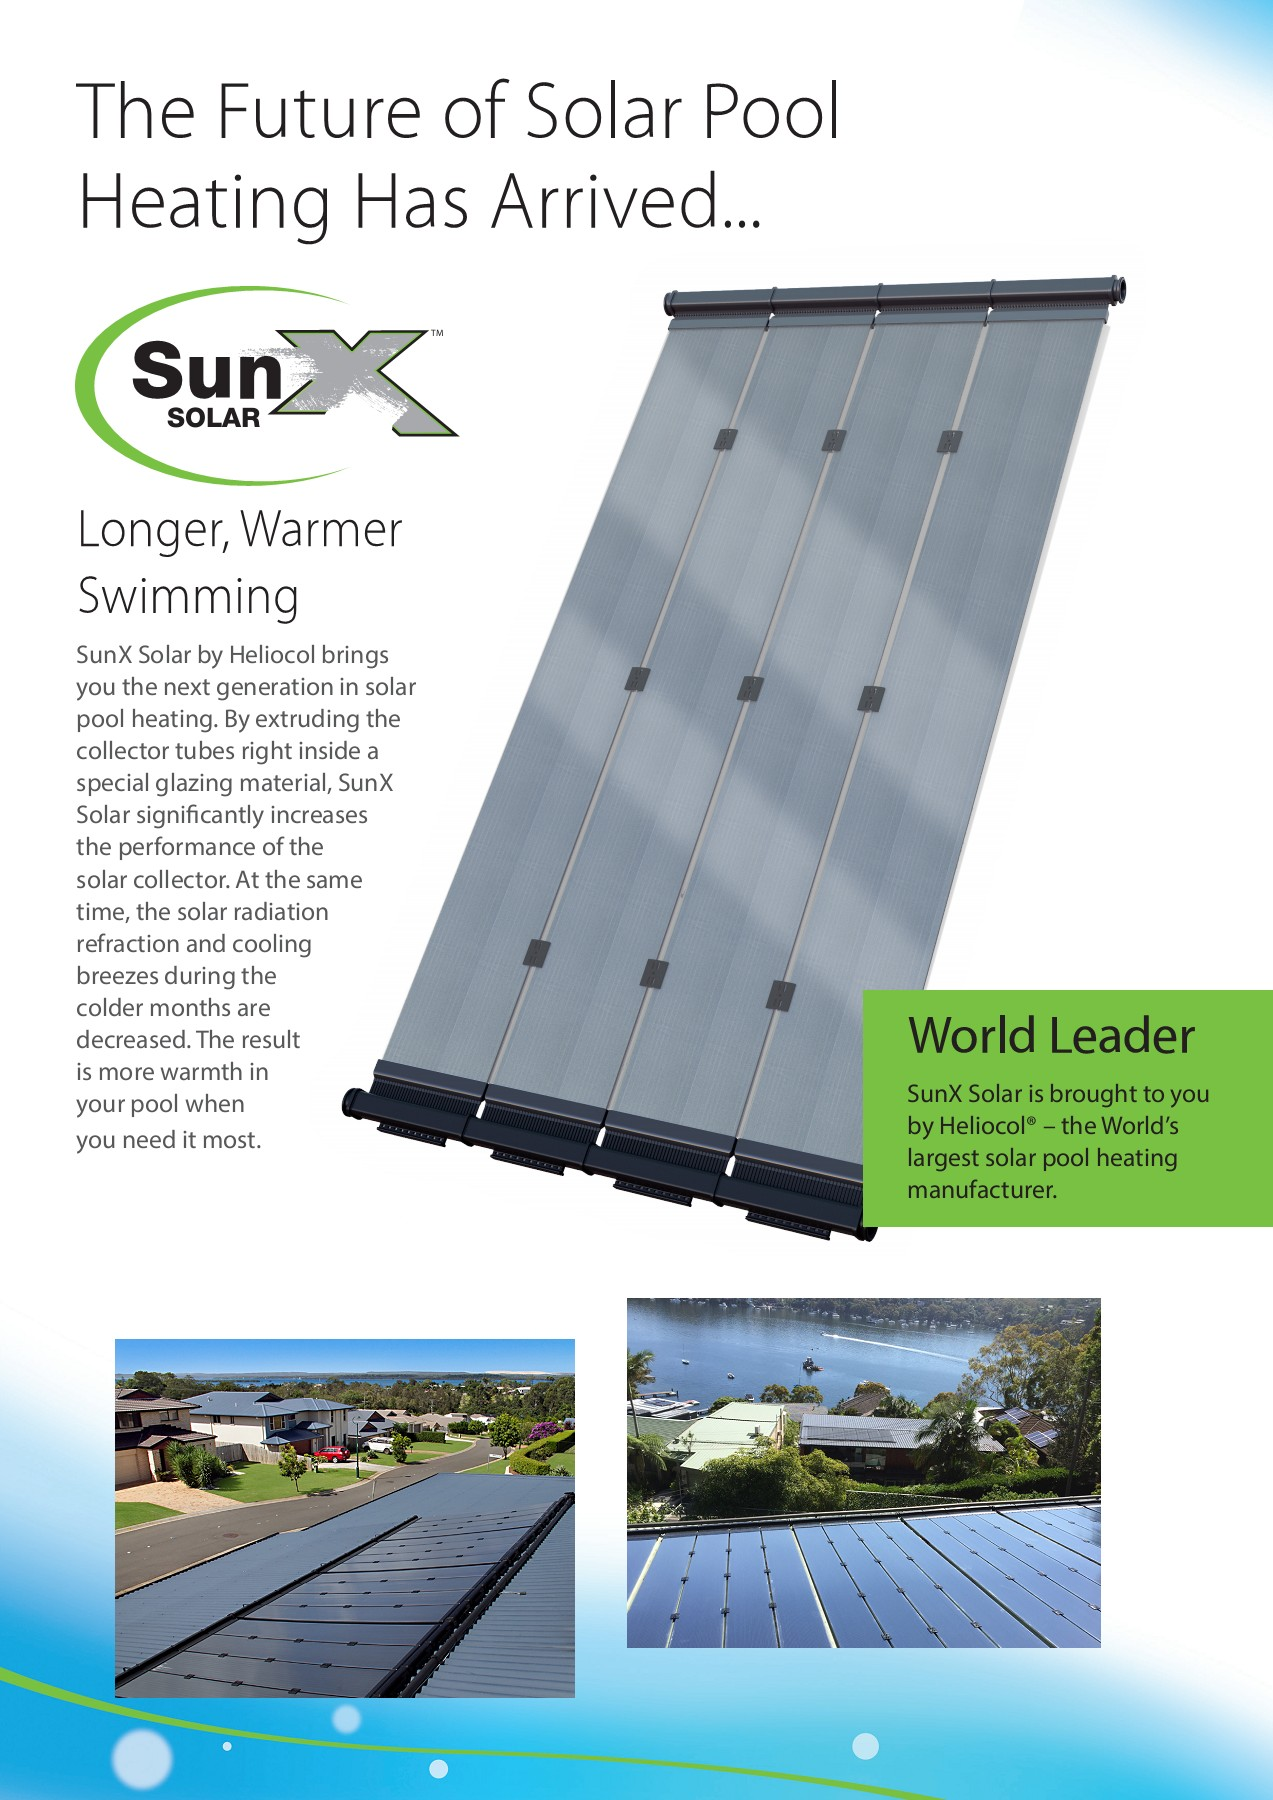 Sunx Solar Pool Heating Brochure Pages 1 4 Text Version Anyflip Home Panels Water Power